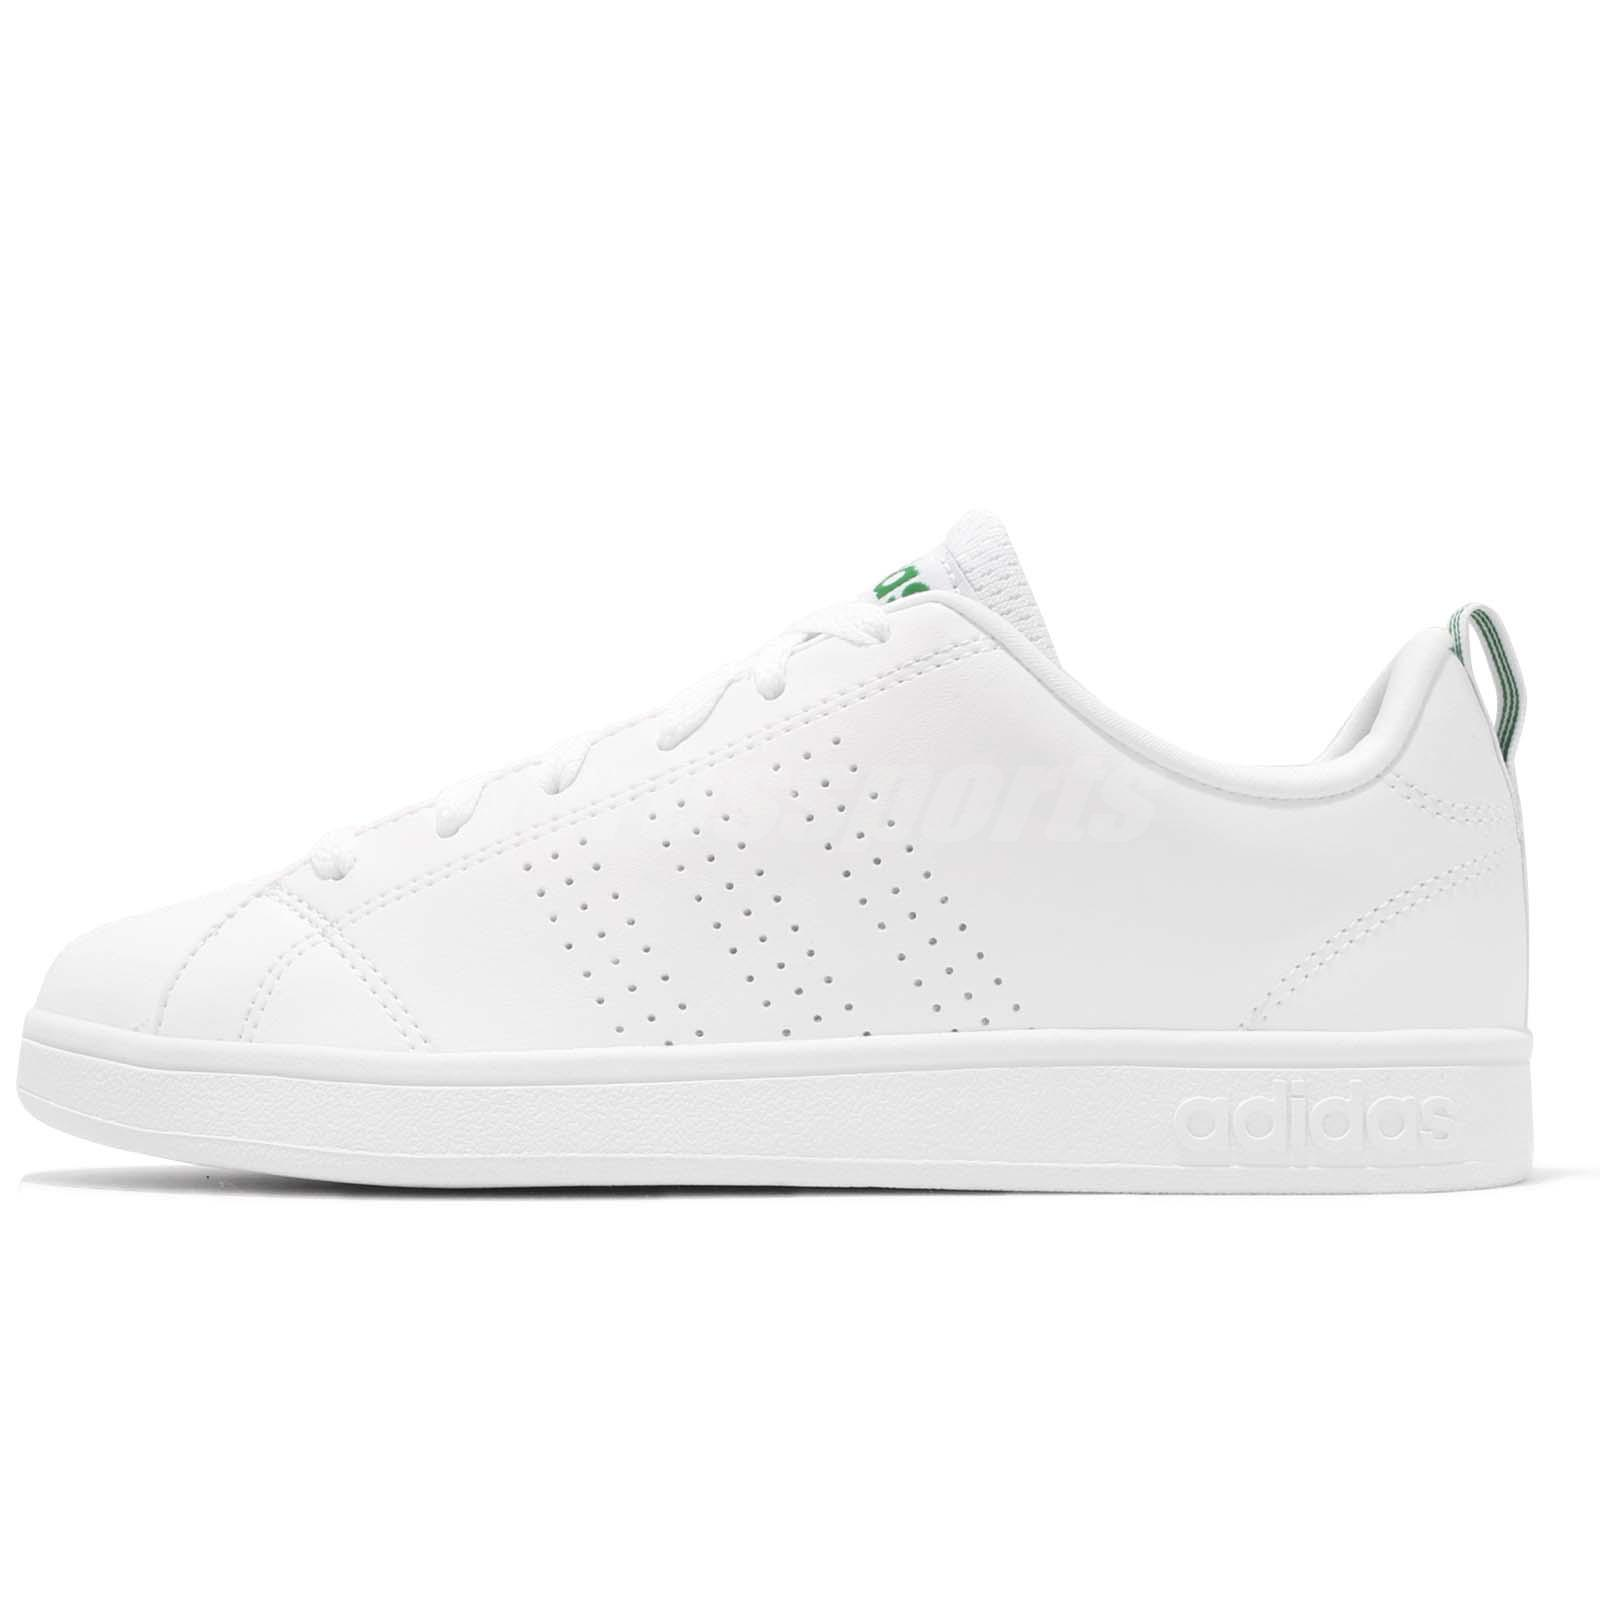 brand new 10d8e a4cee adidas Neo Label Advantage Clean VS White Green Men Casual Shoes Sneakers  F99251